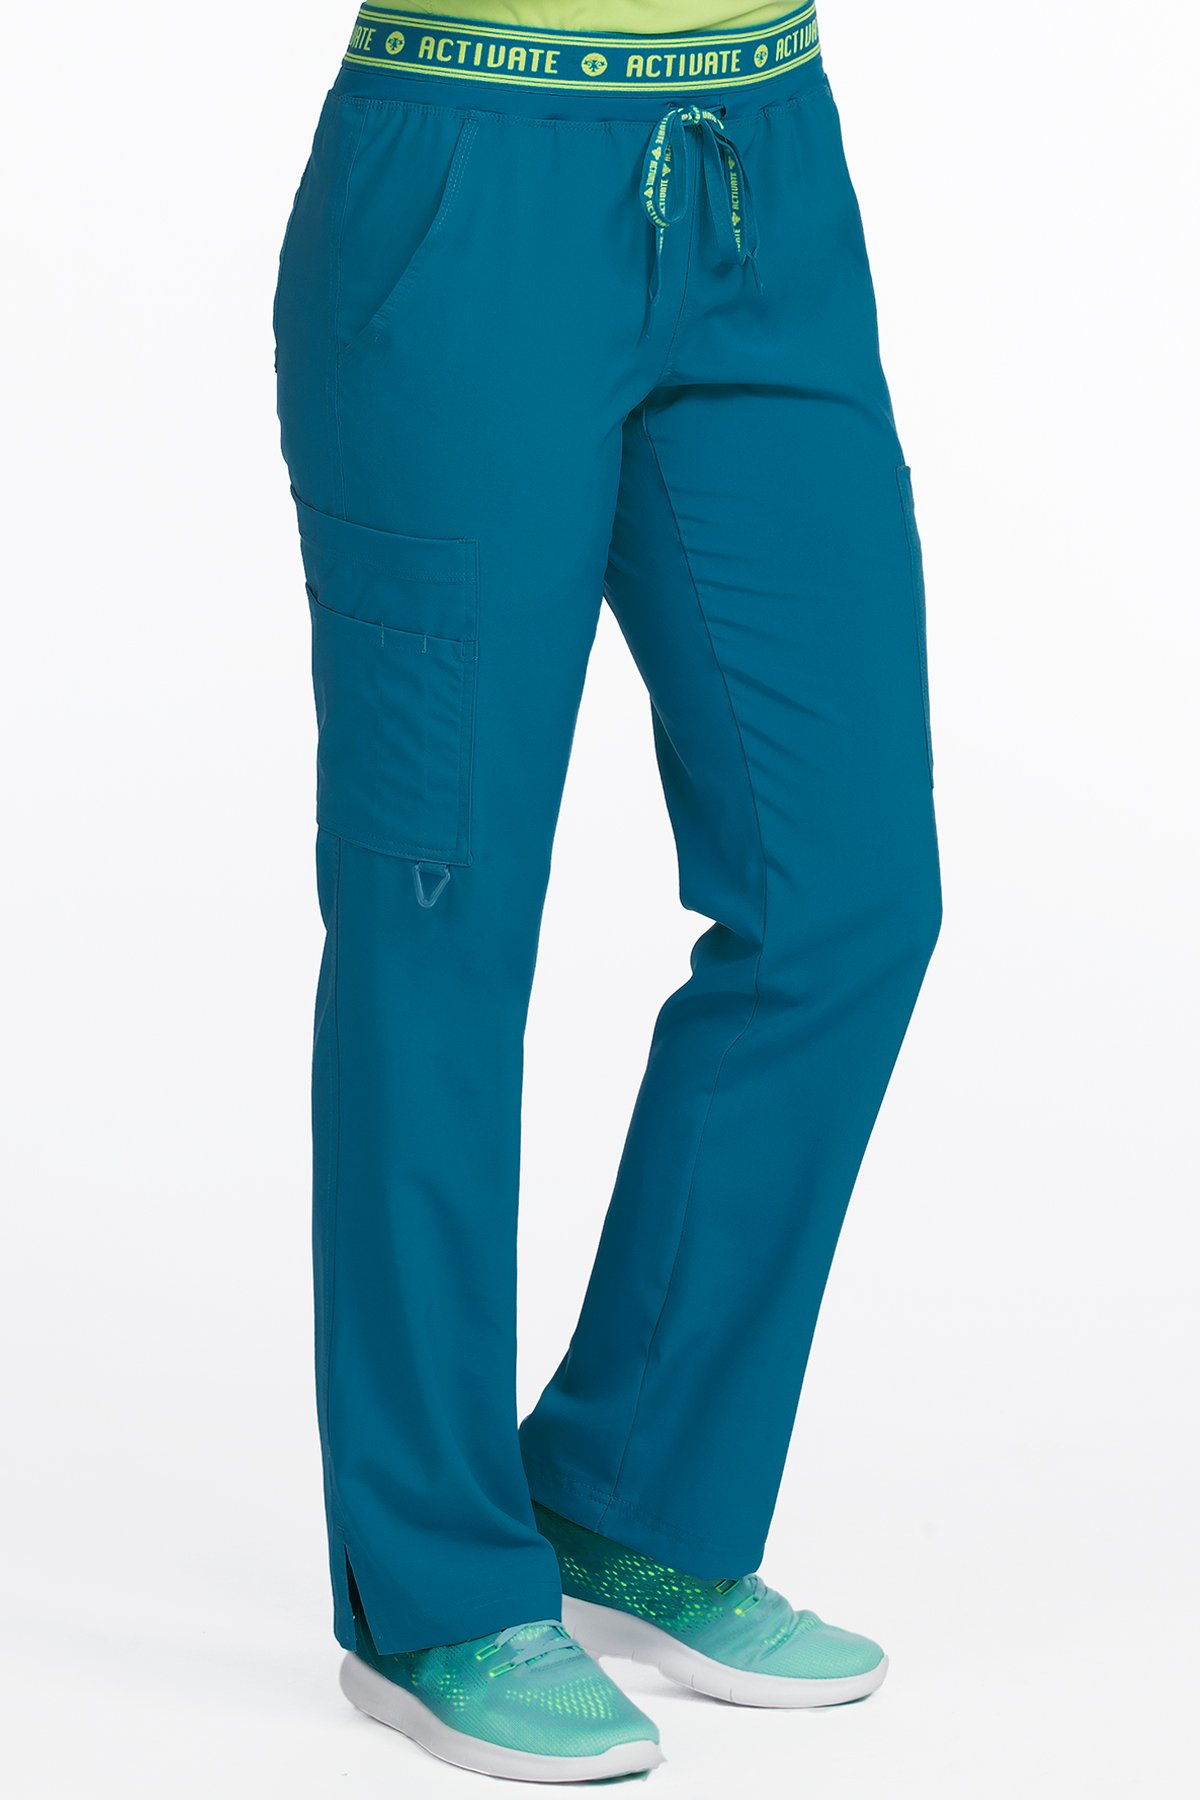 Med Couture Women's 'Activate' Flow Yoga Cargo Scrub Pant, Caribbean, X-Small